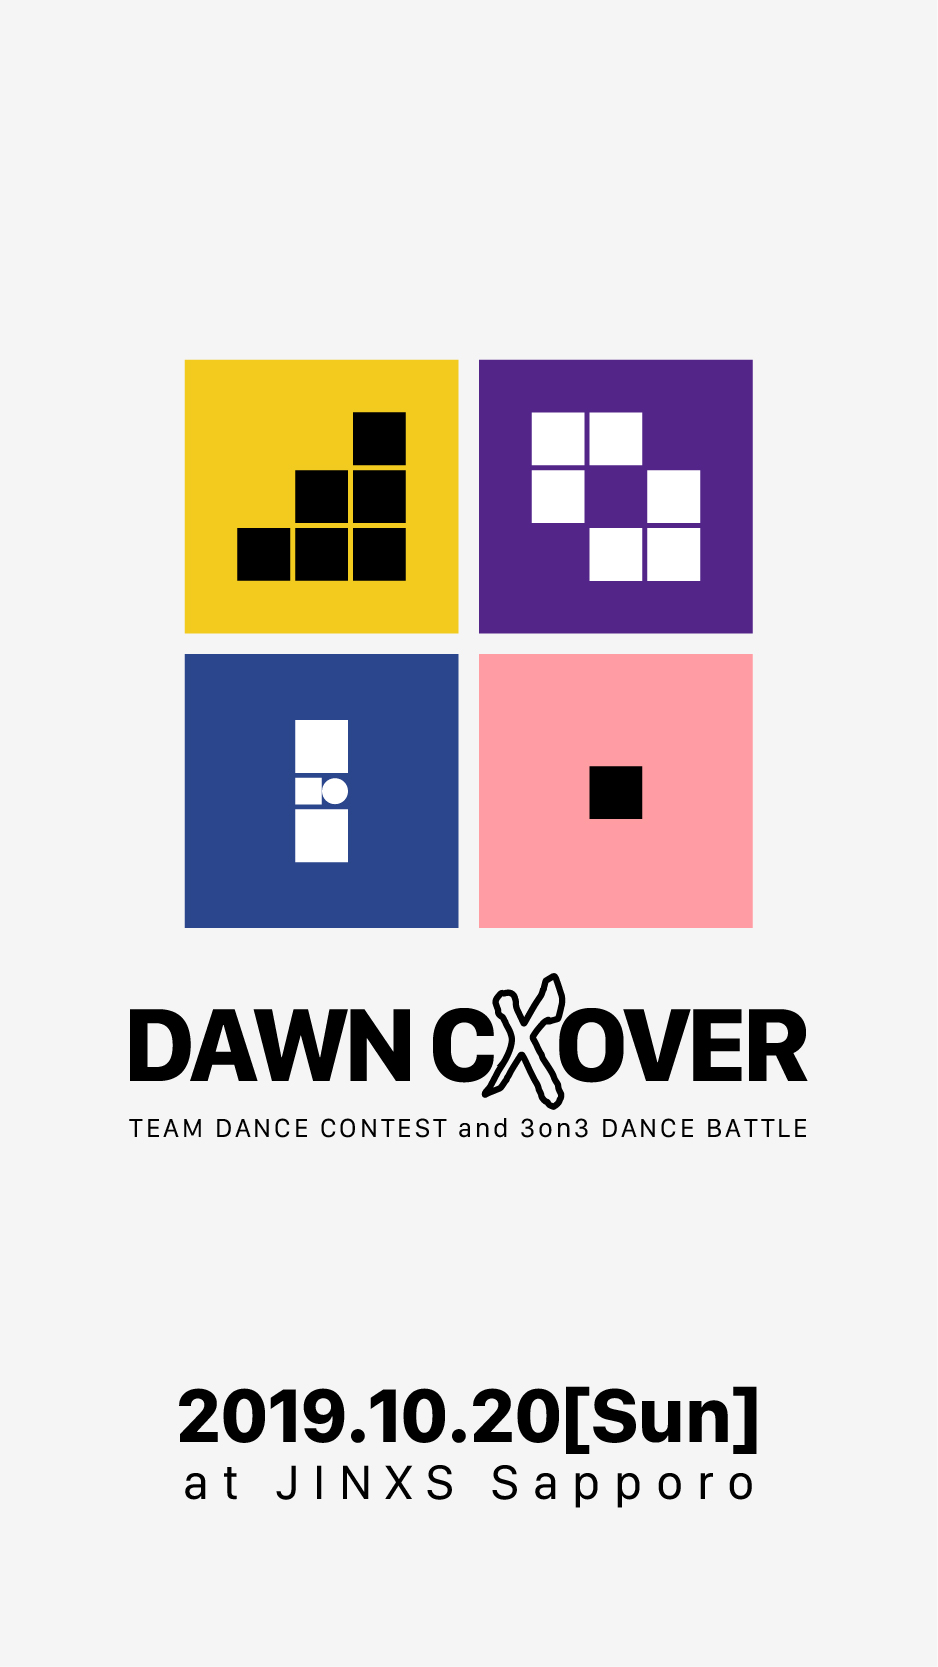 [Danxs.vol6]DAWN CLOVER